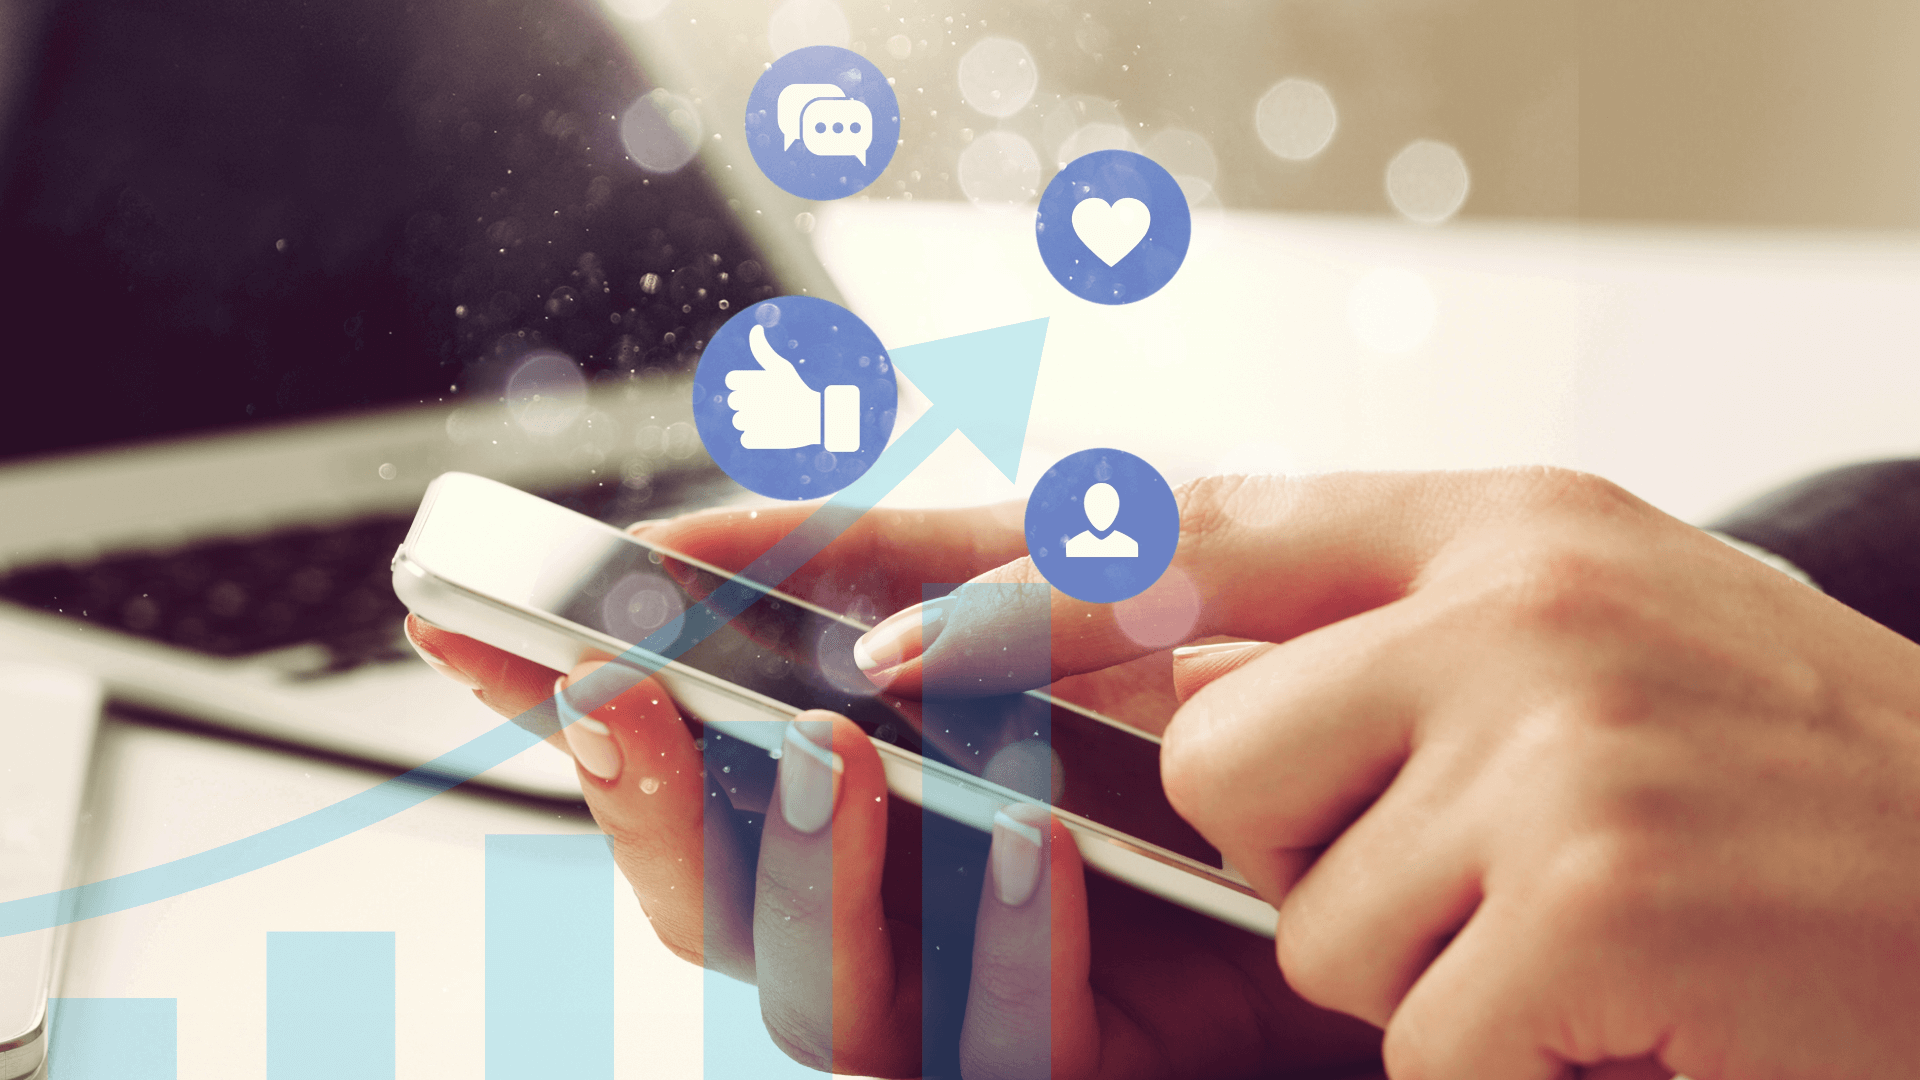 5 Ways to Boost Your Social Media Marketing